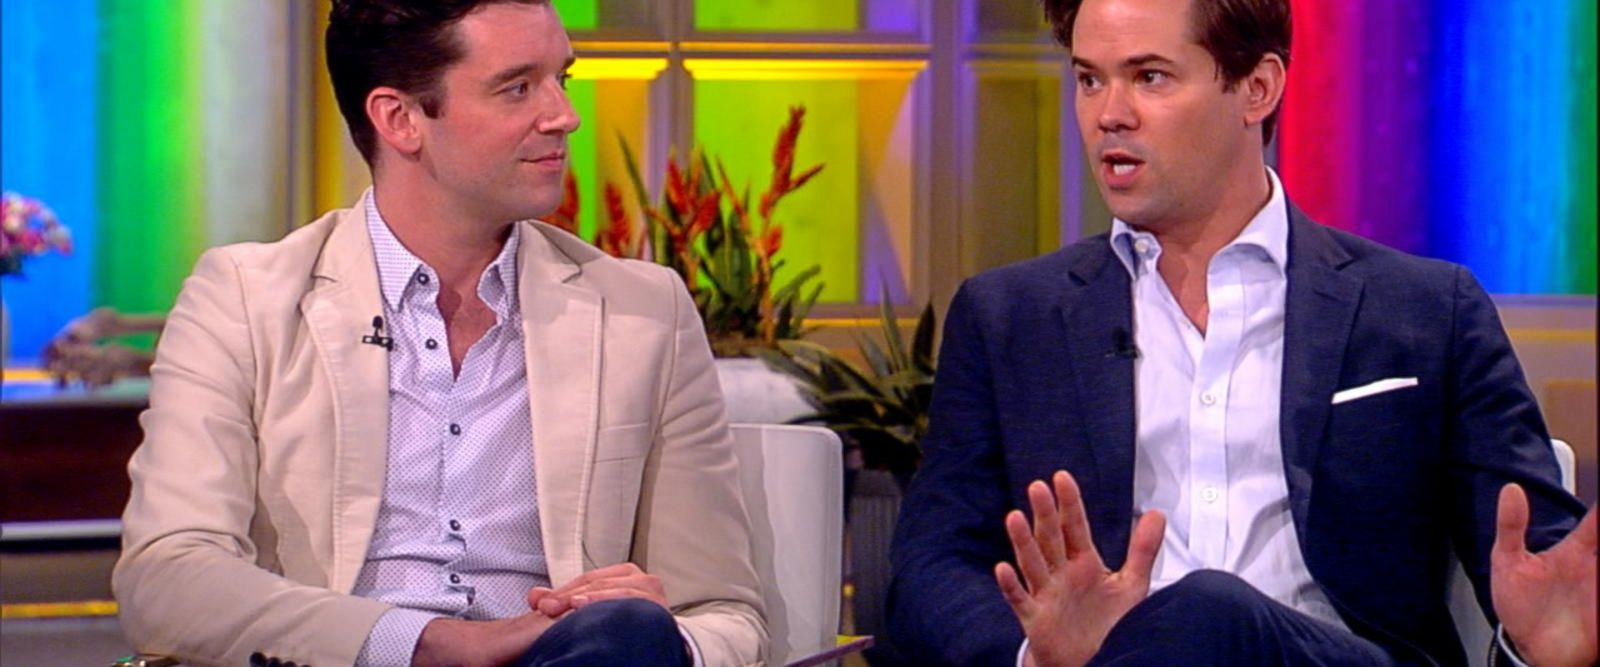 VIDEO: Michael Urie and Andrew Rannells on the hurdles they face as gay actors